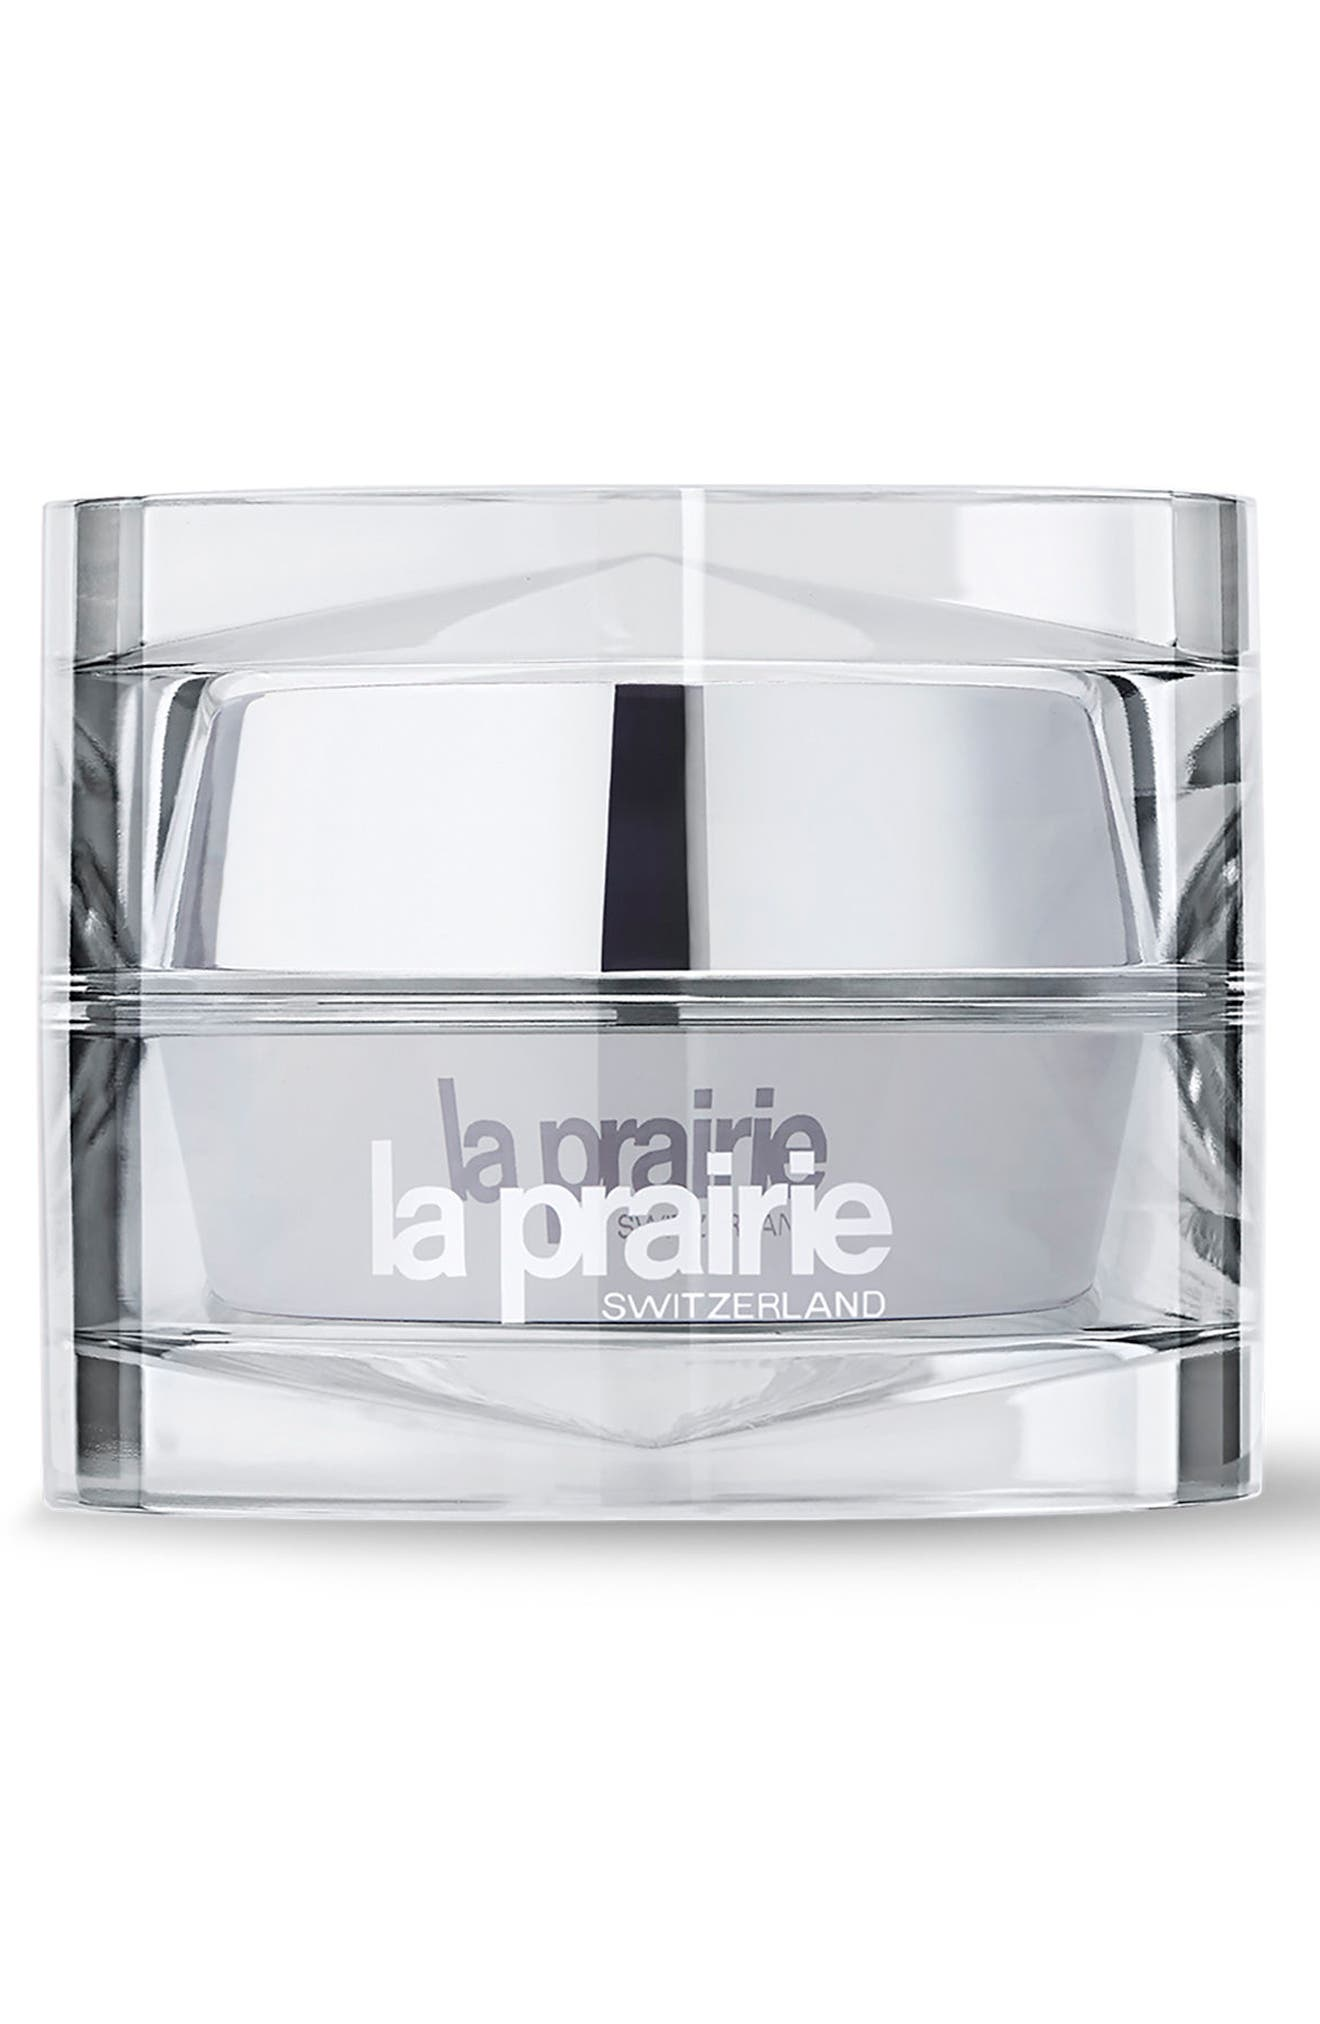 Main Image - La Prairie Cellular Eye Cream Platinum Rare